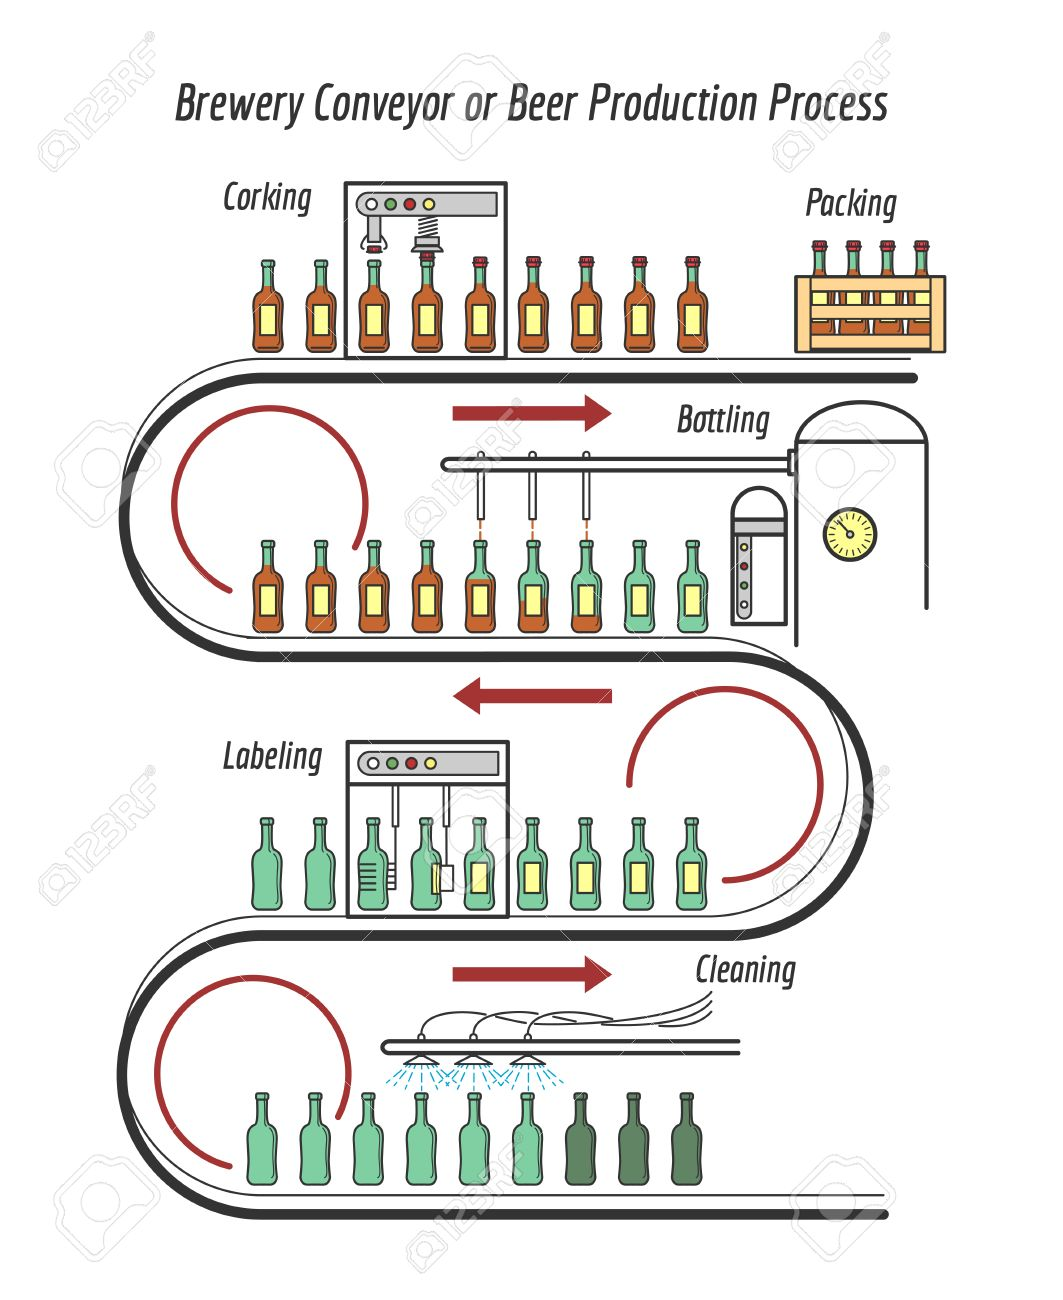 Beer production line. Brewery conveyor or beer production process line illustration - 57159305